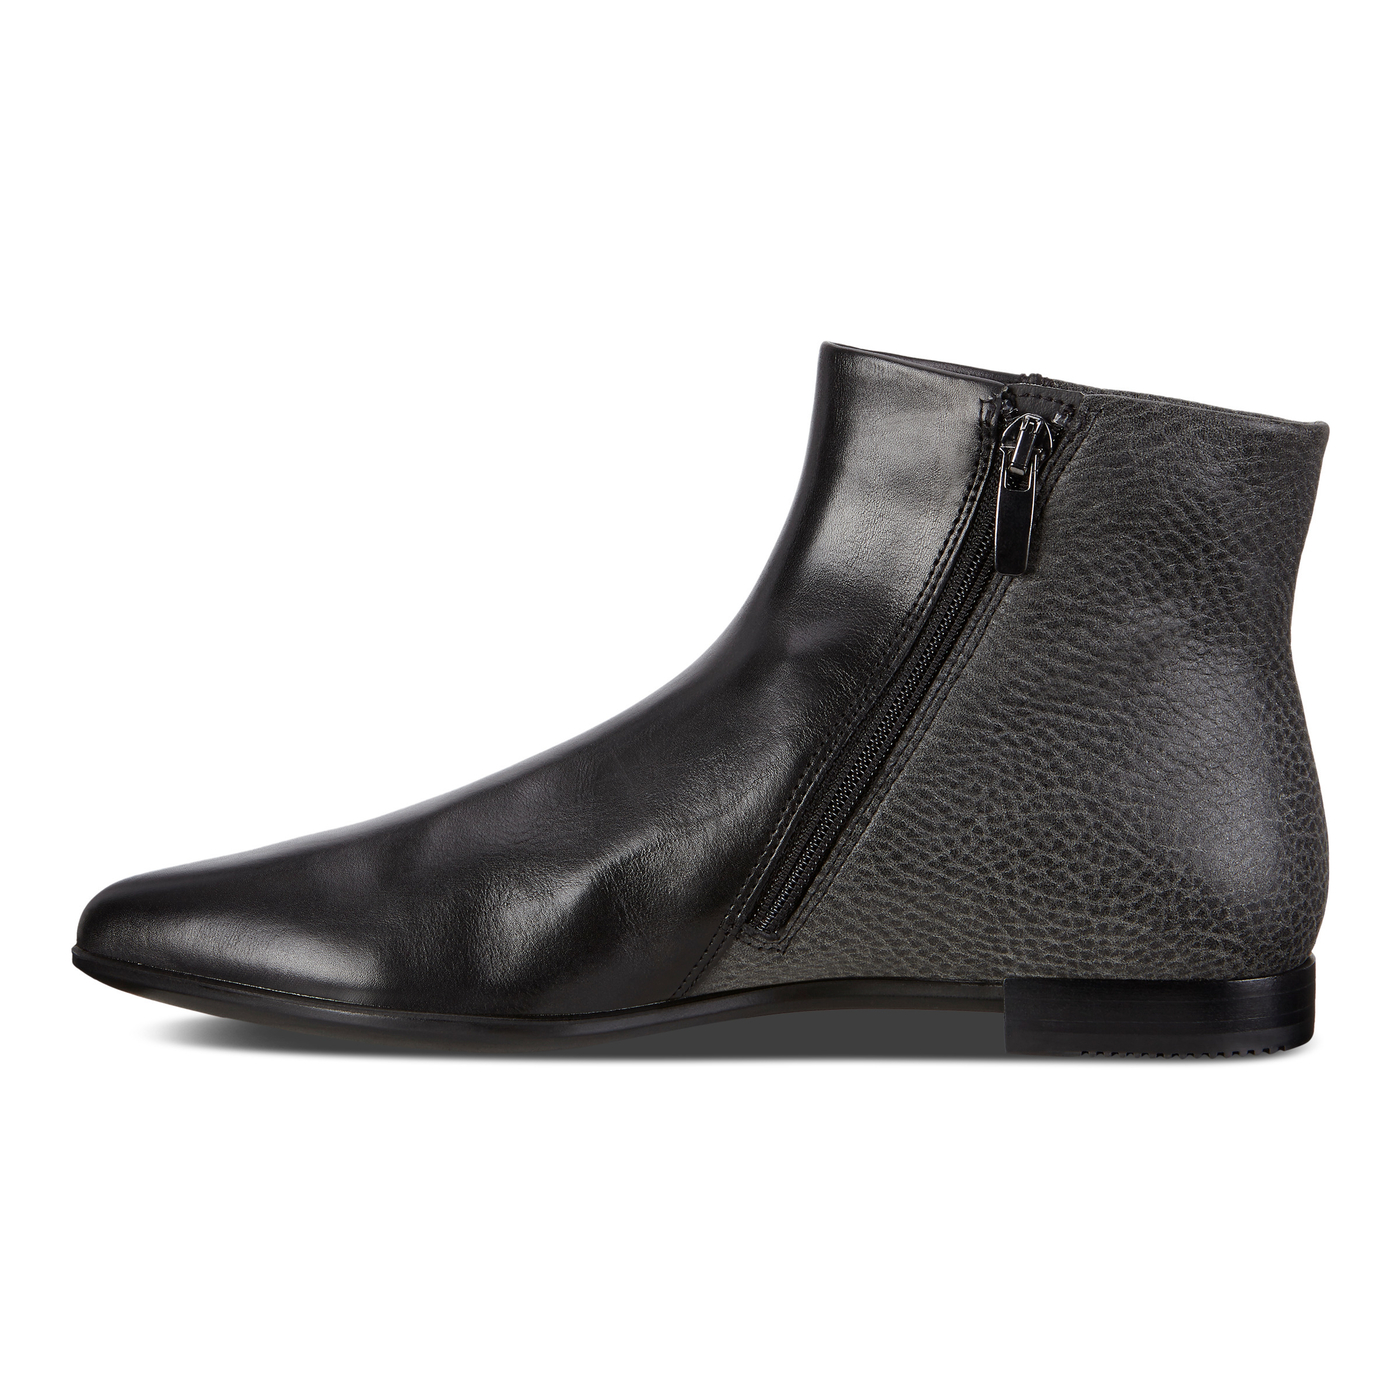 ECCO SHAPE POINTY BALLERINA Shinebright Ankle Boot